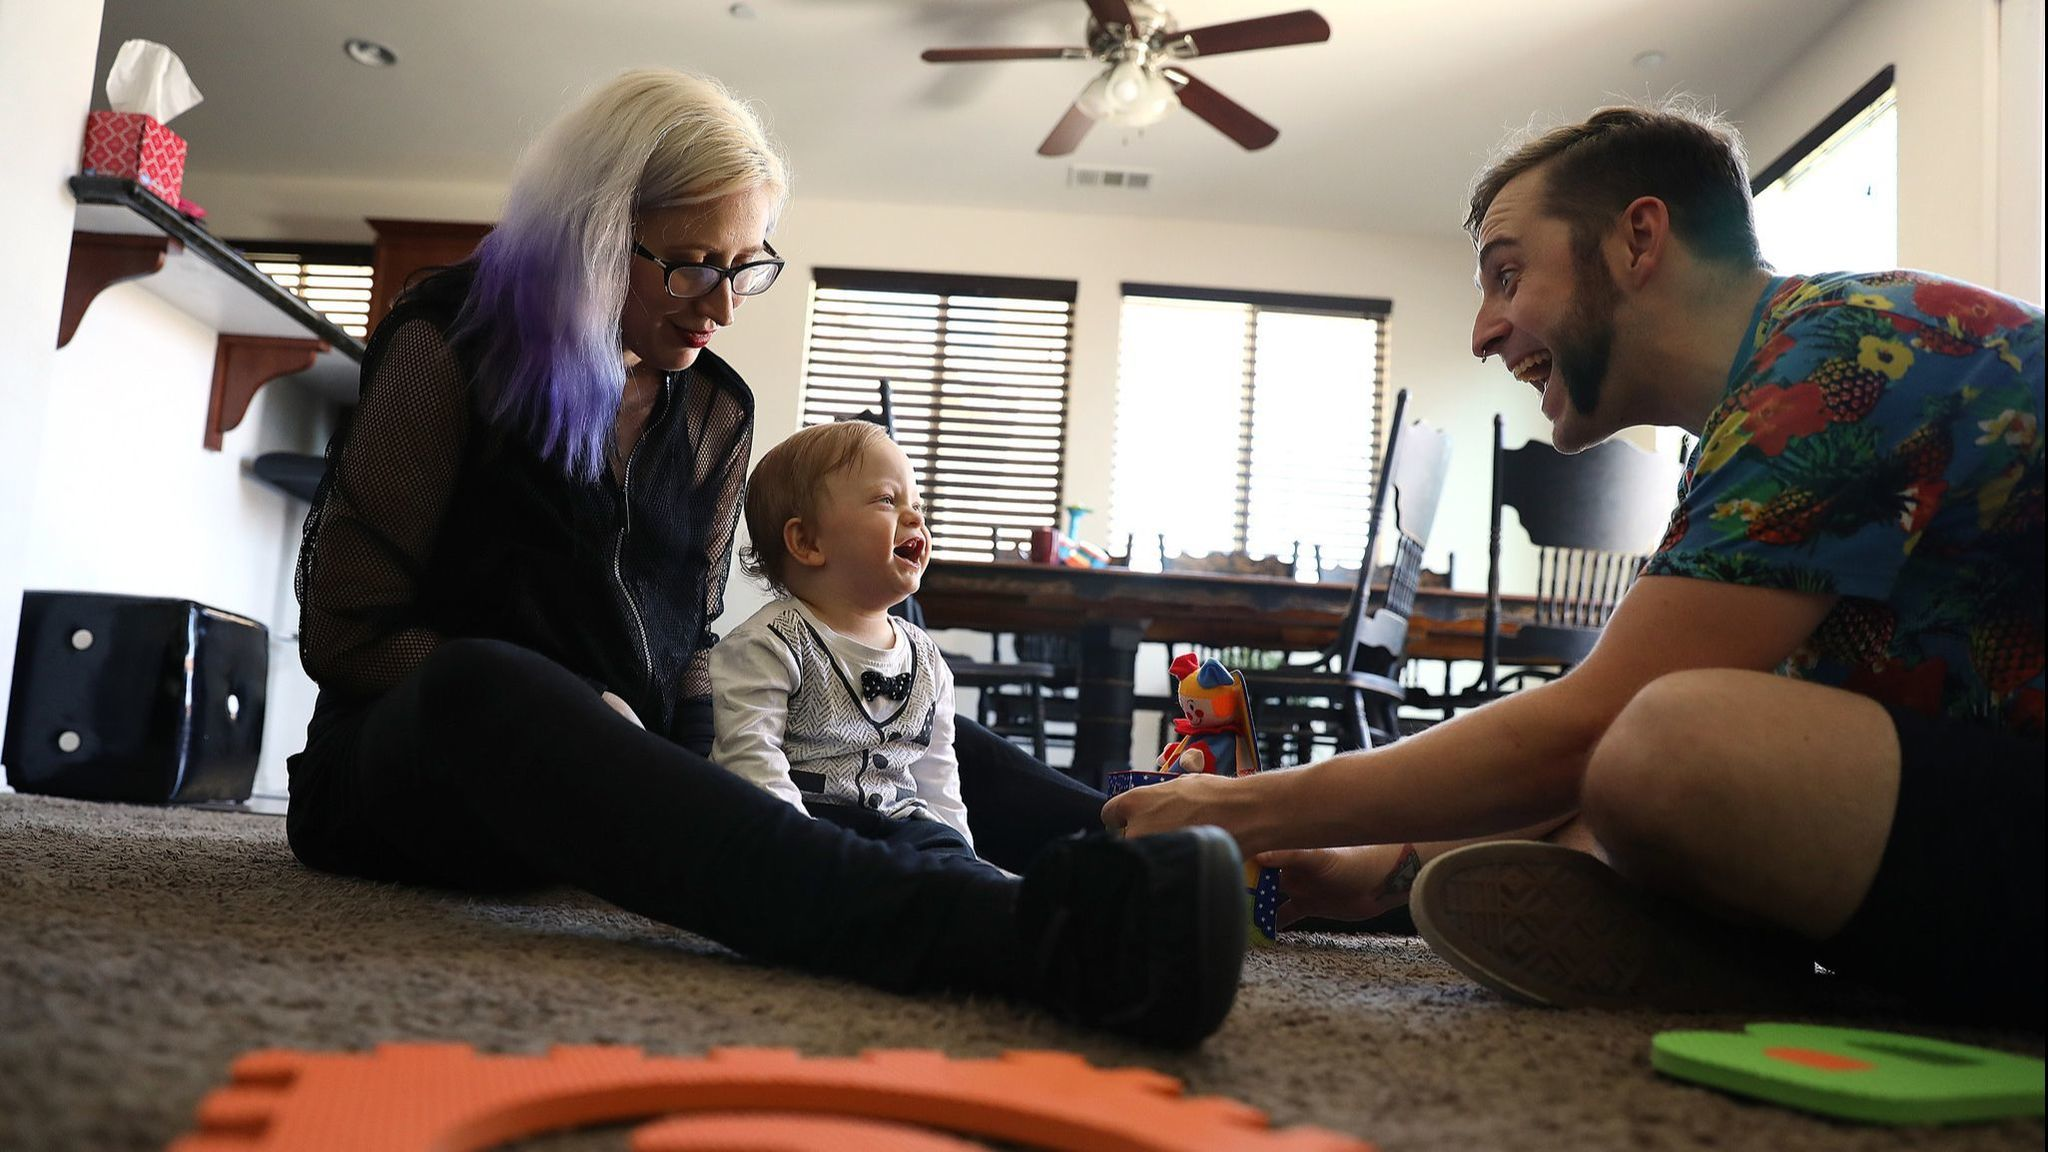 First-time homebuyers James Cunningham and Heather Mathiesen play with their son, Hugo, at home in Lancaster. (Christina House / Los Angeles Times)